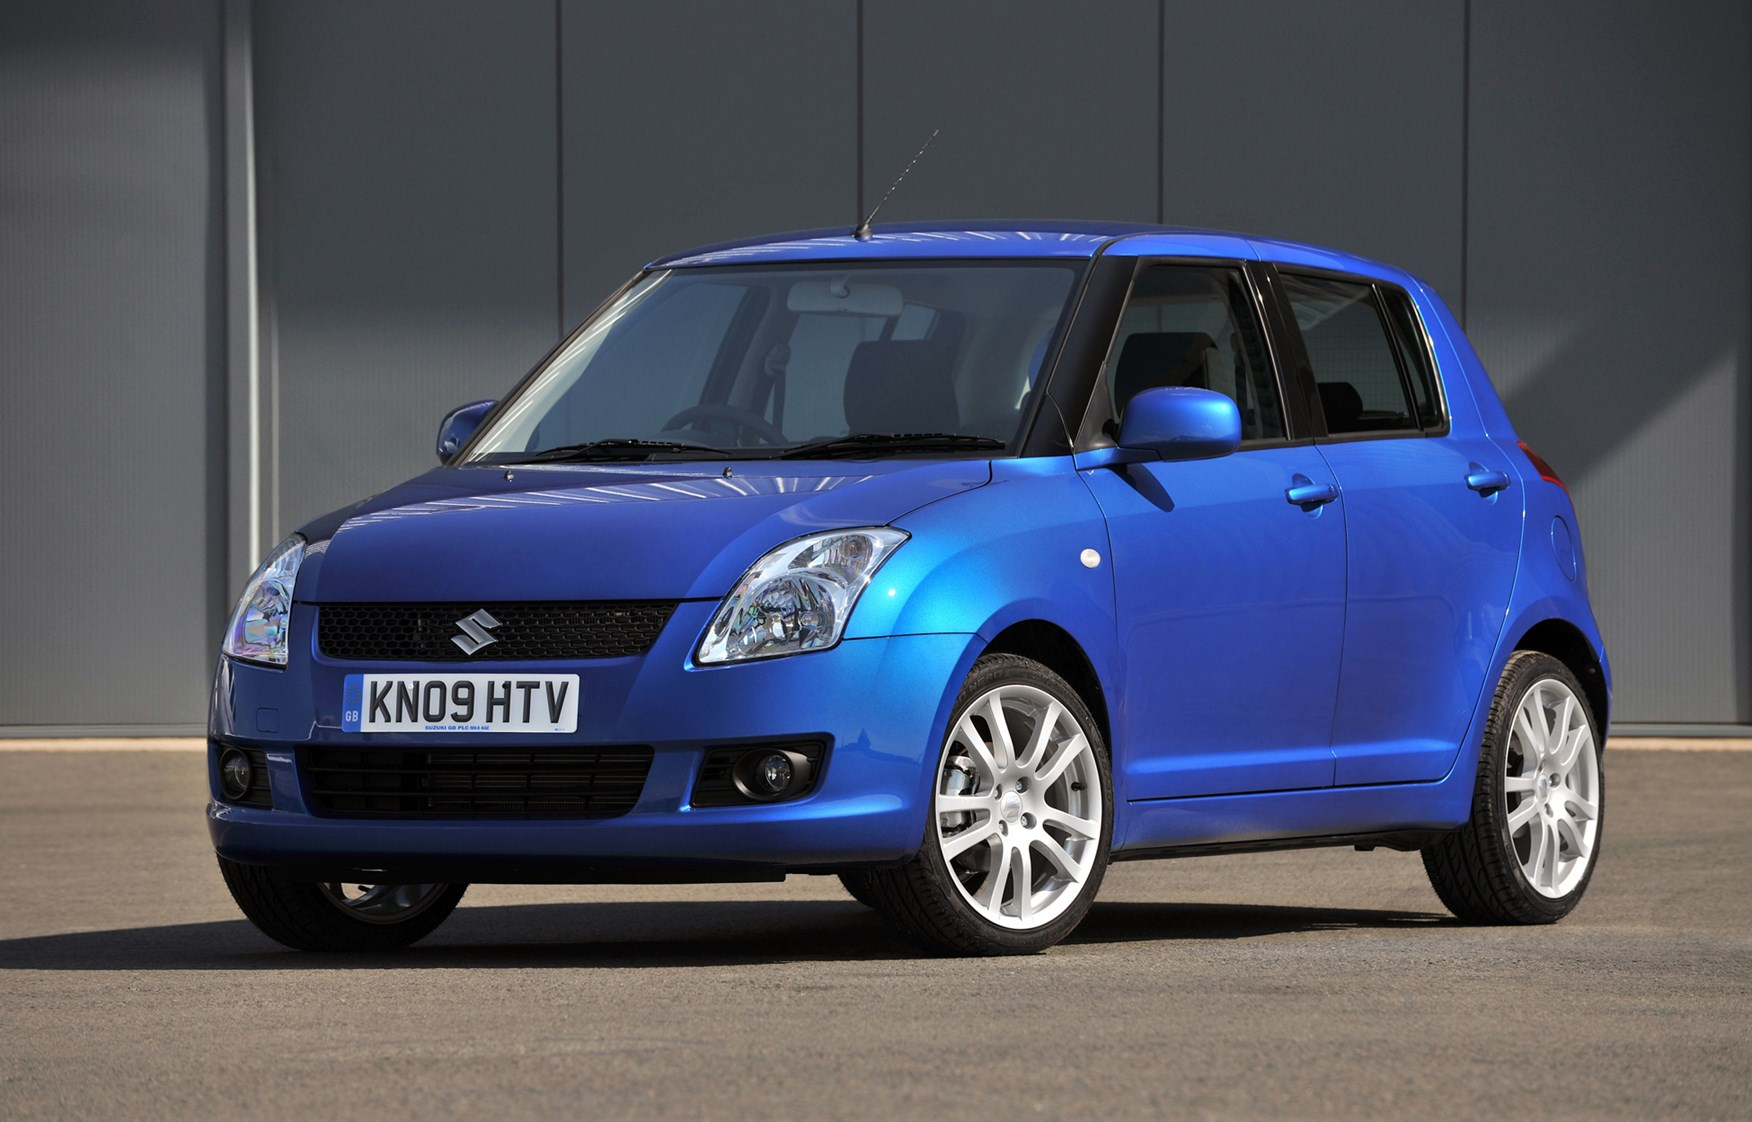 Suzuki Swift Hatchback Review (2005 - 2011) | Parkers